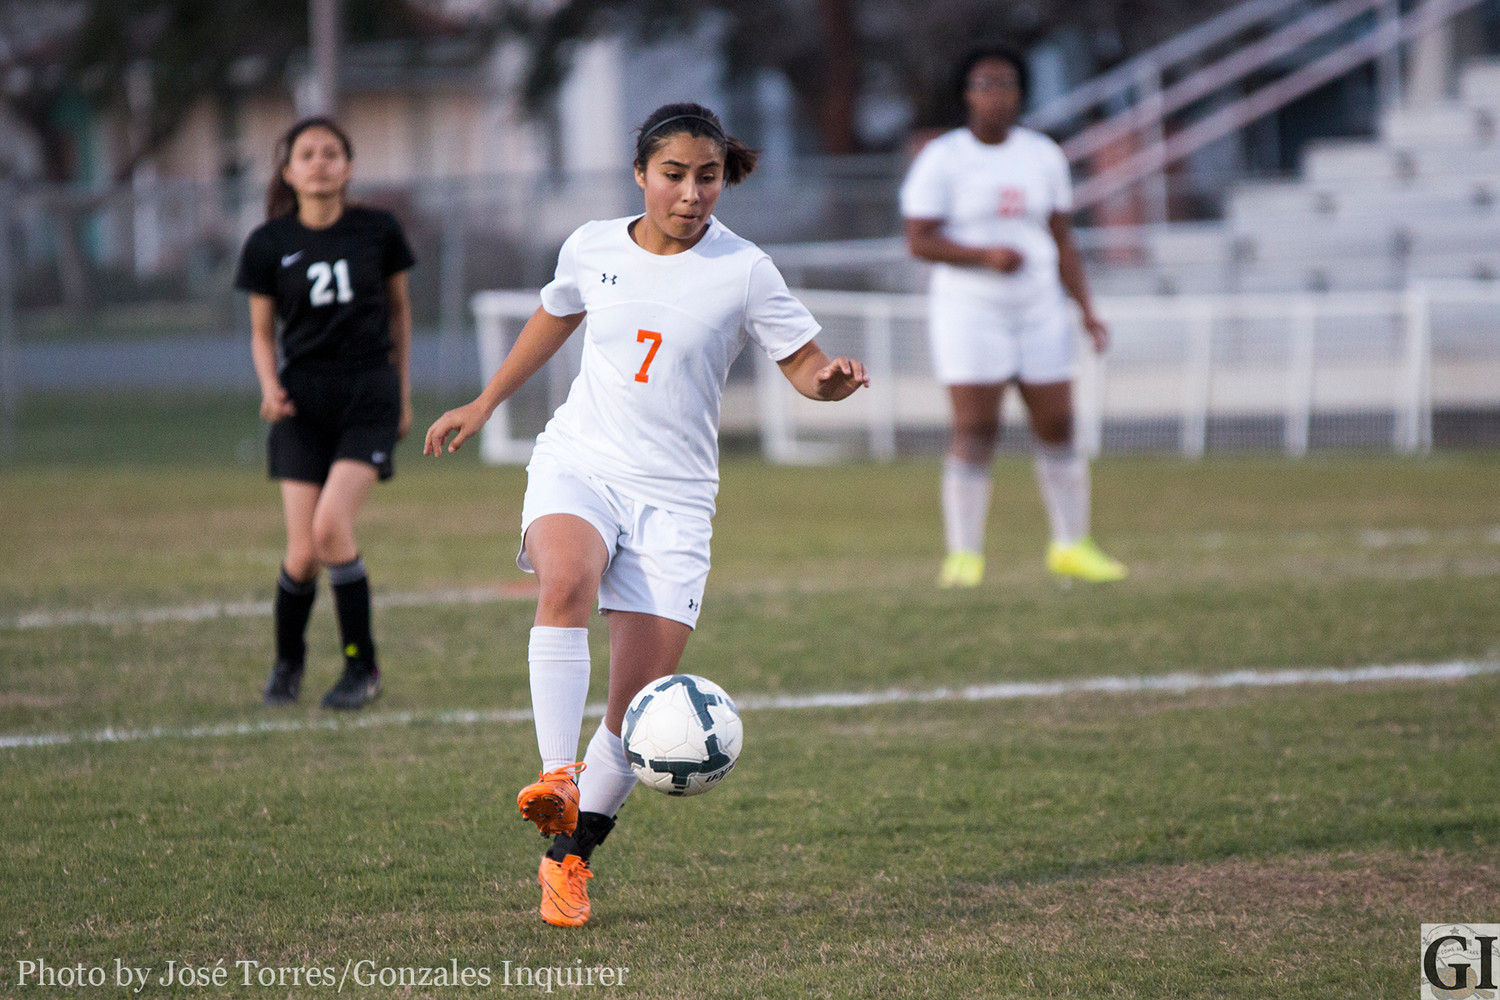 Senior Fernanda Velazquez will be a key player for the Gonzales Lady Apaches, not only on the field but off as well. Her skill as well as knowledge of the game will be a factor.